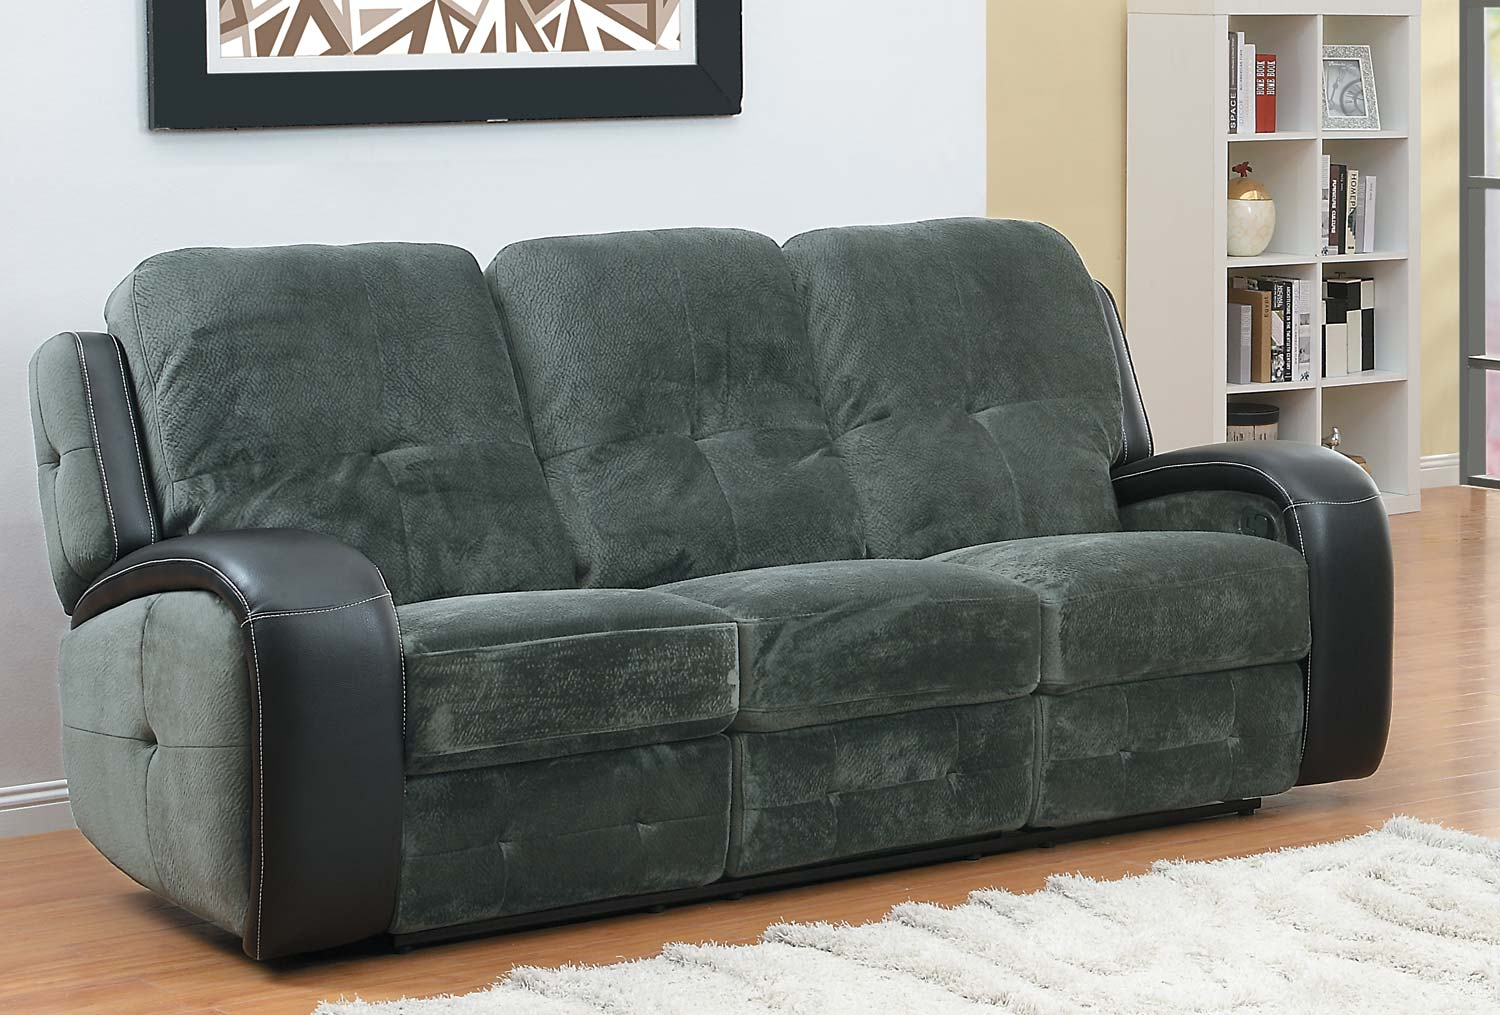 Homelegance Flatbush Double Recliner Sofa - Textured Plush Microfiber - Black Bi-Cast Vinyl Cover